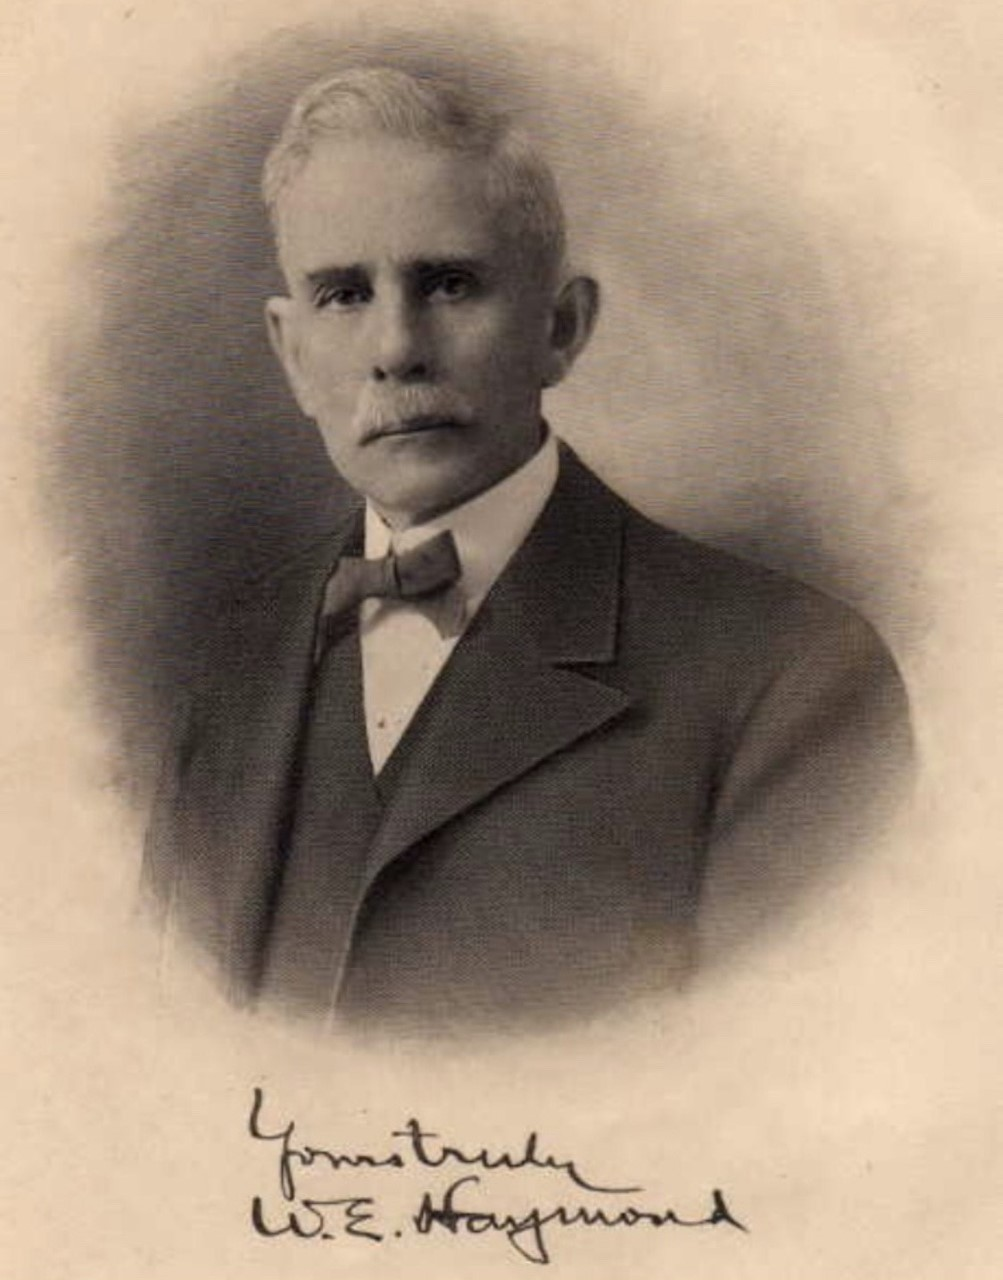 William Edgar Haymond